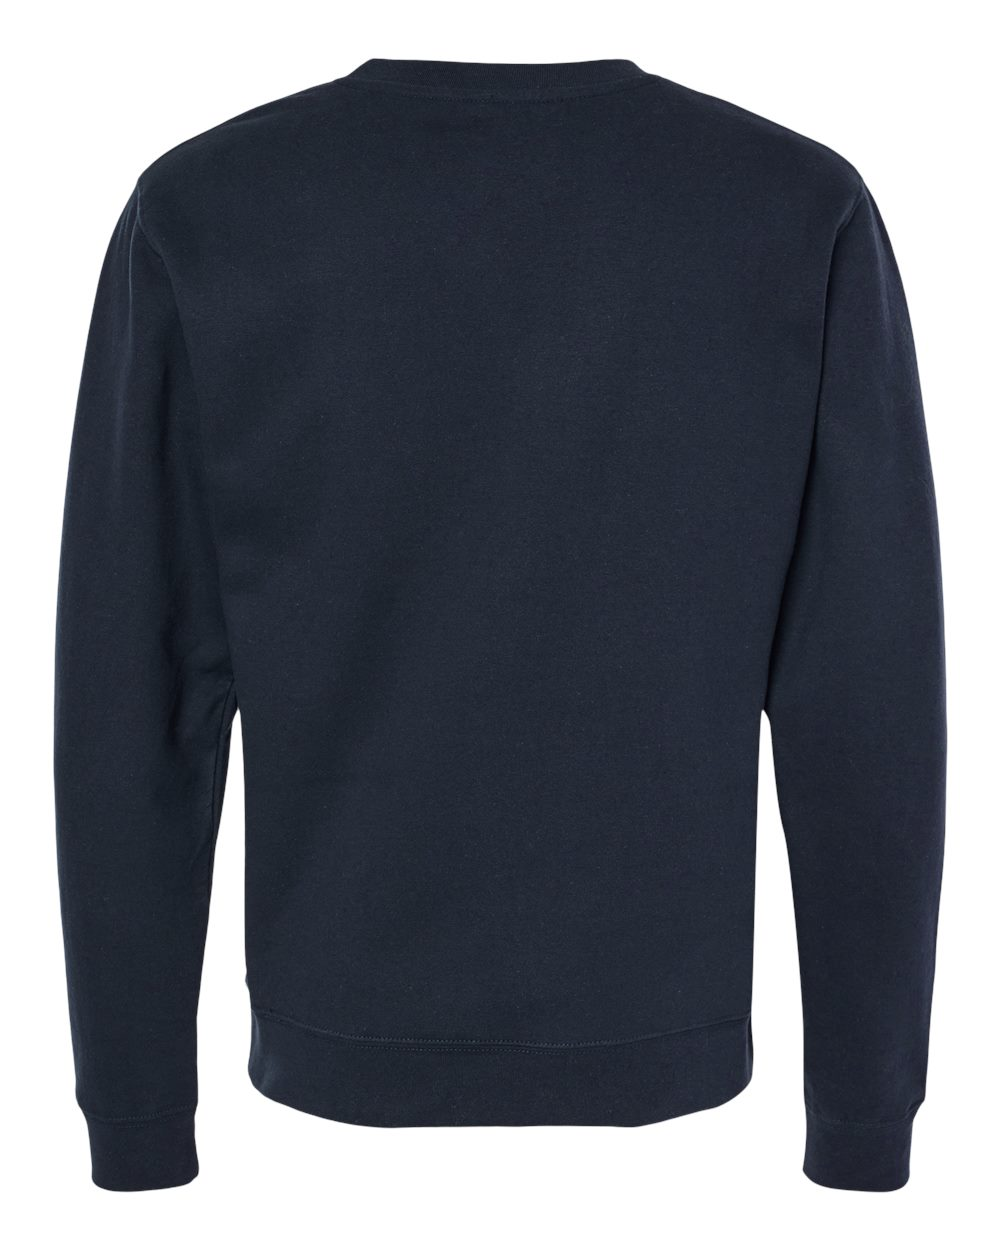 Independent-Trading-Co-Midweight-Crewneck-Sweatshirt-SS3000-up-to-3XL miniature 16